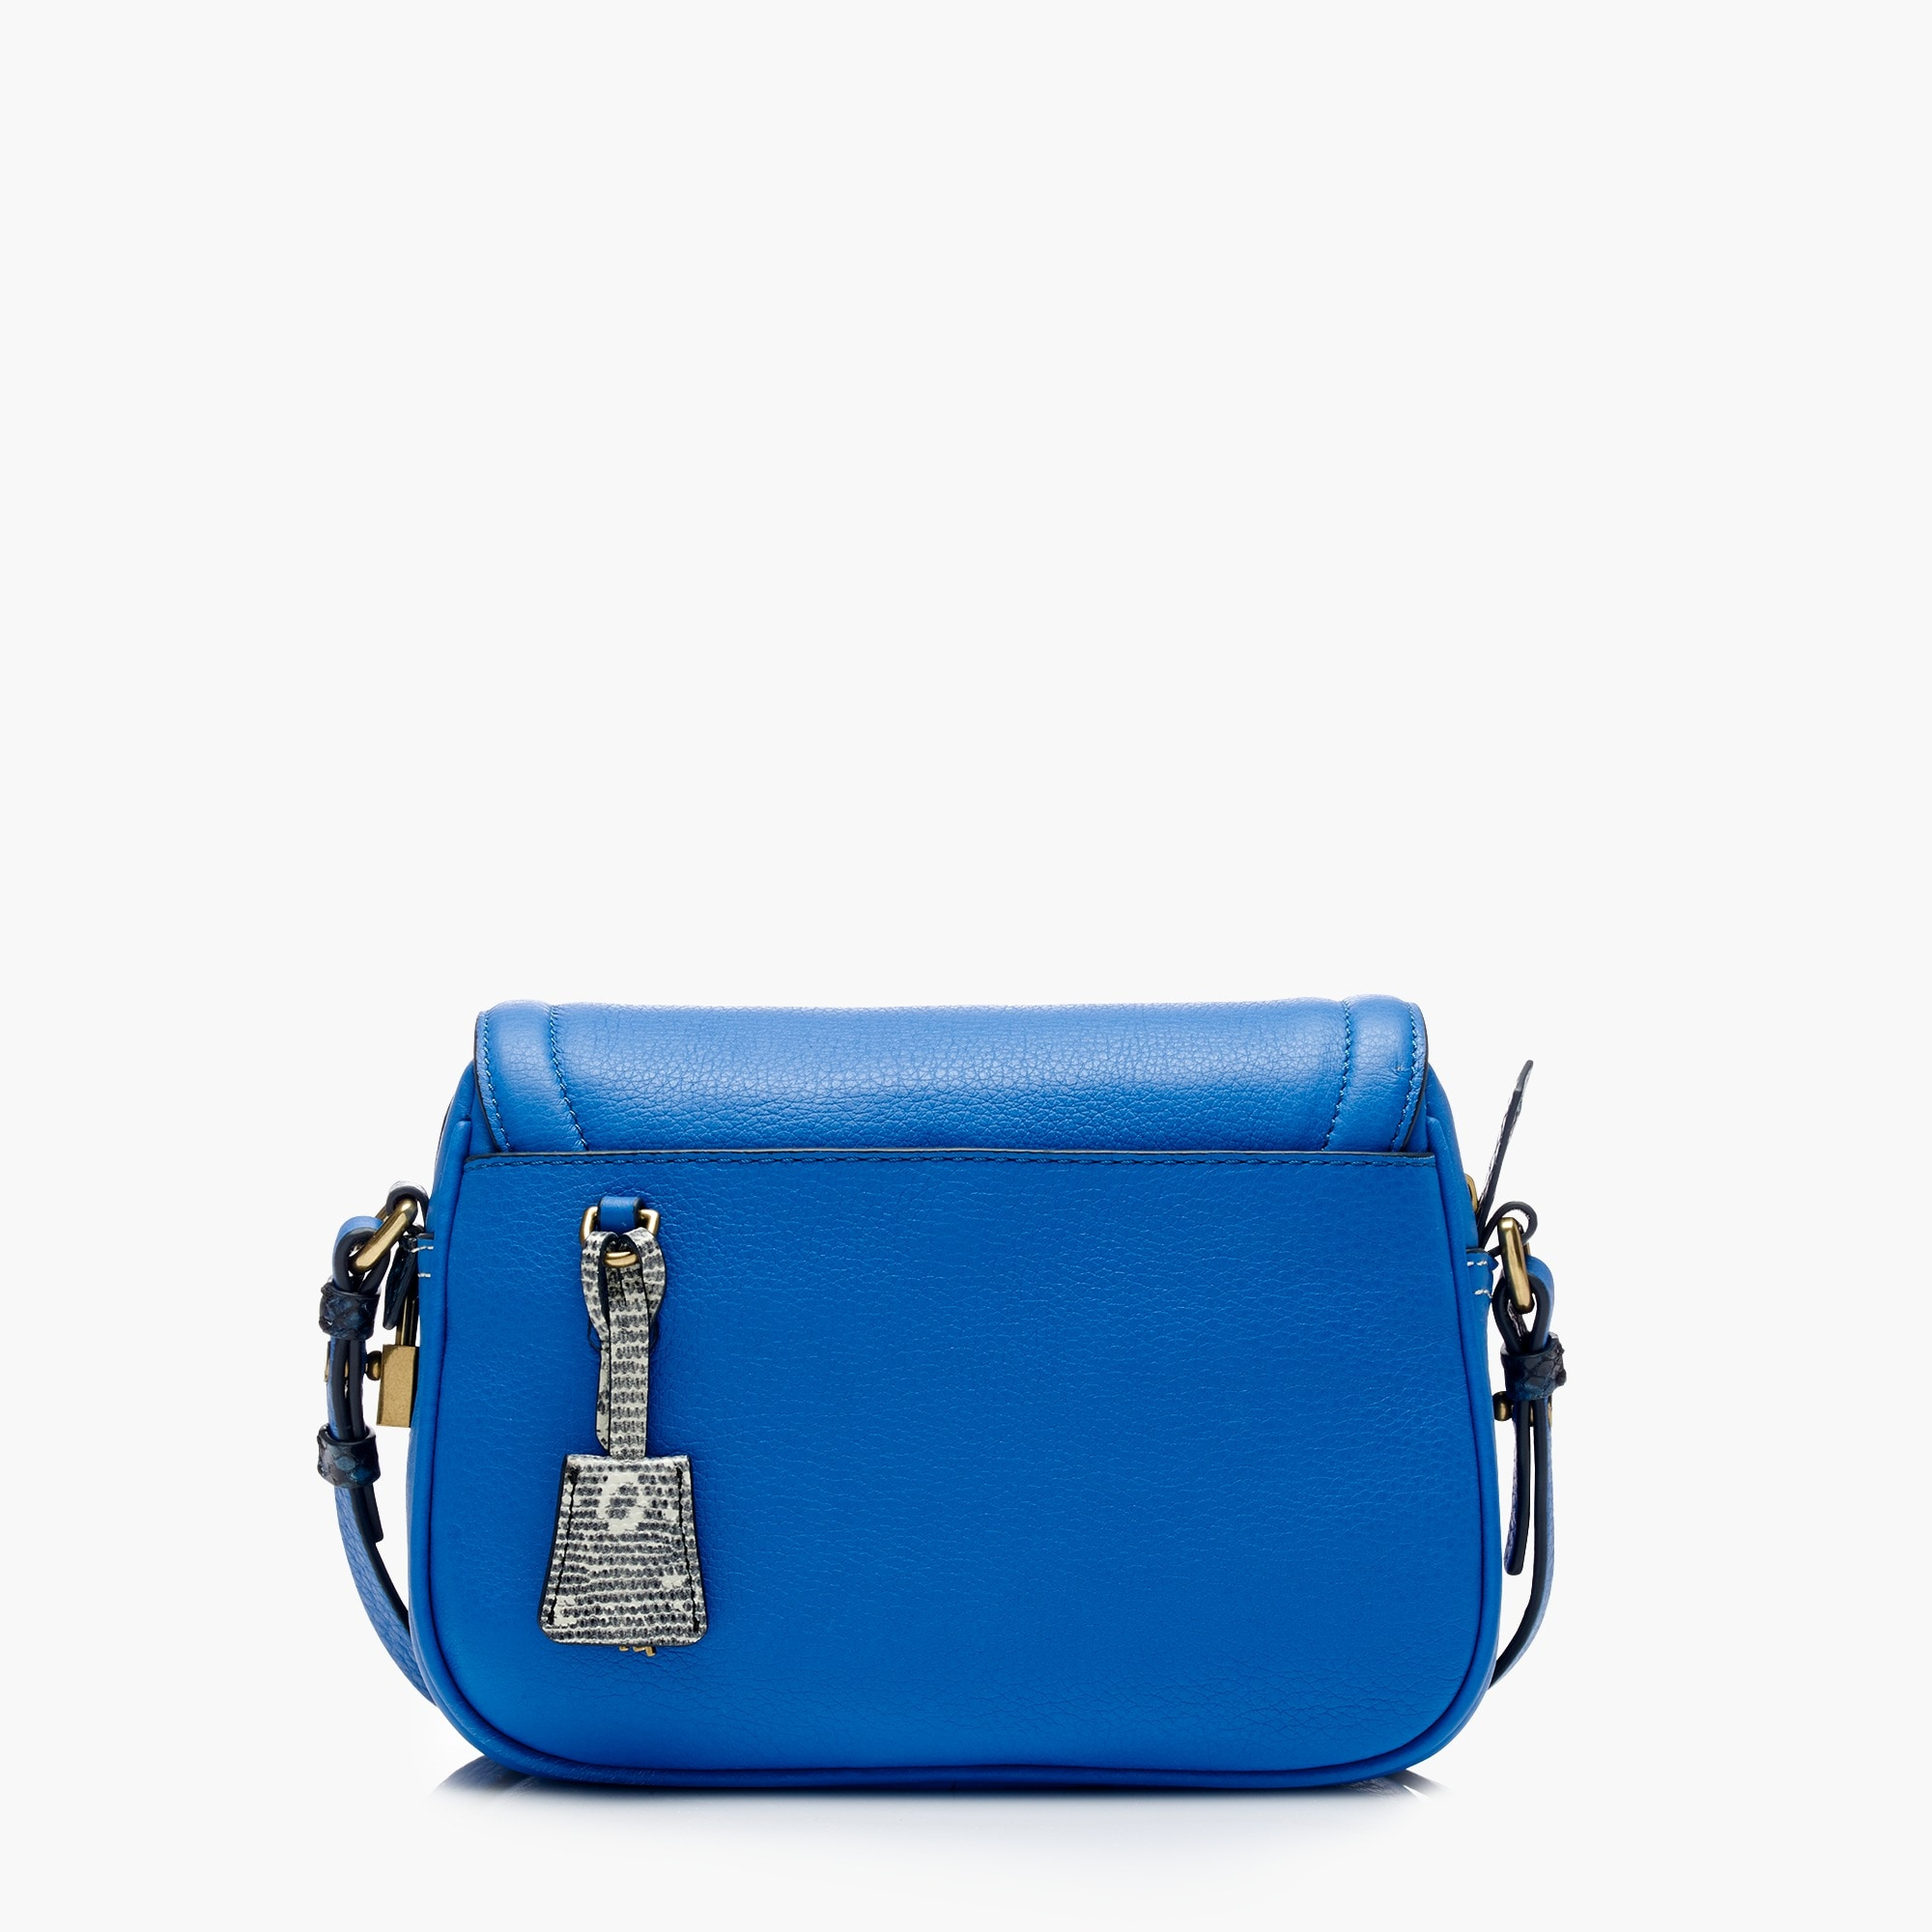 Signet flap bag with printed strap in Italian leather